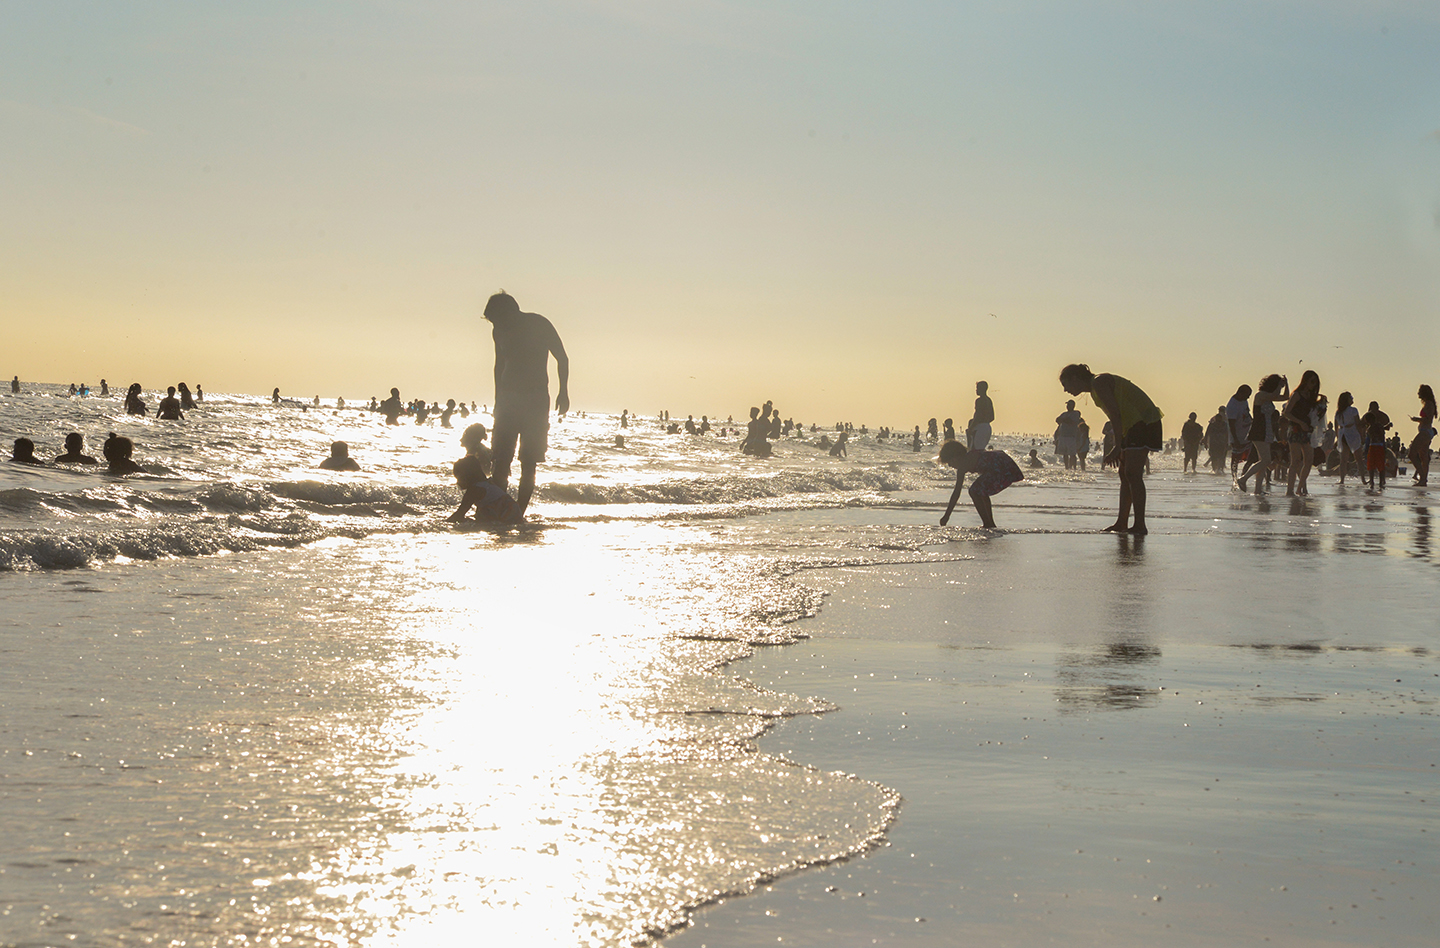 People on Siesta Beach at twilight, playing on the shoreline